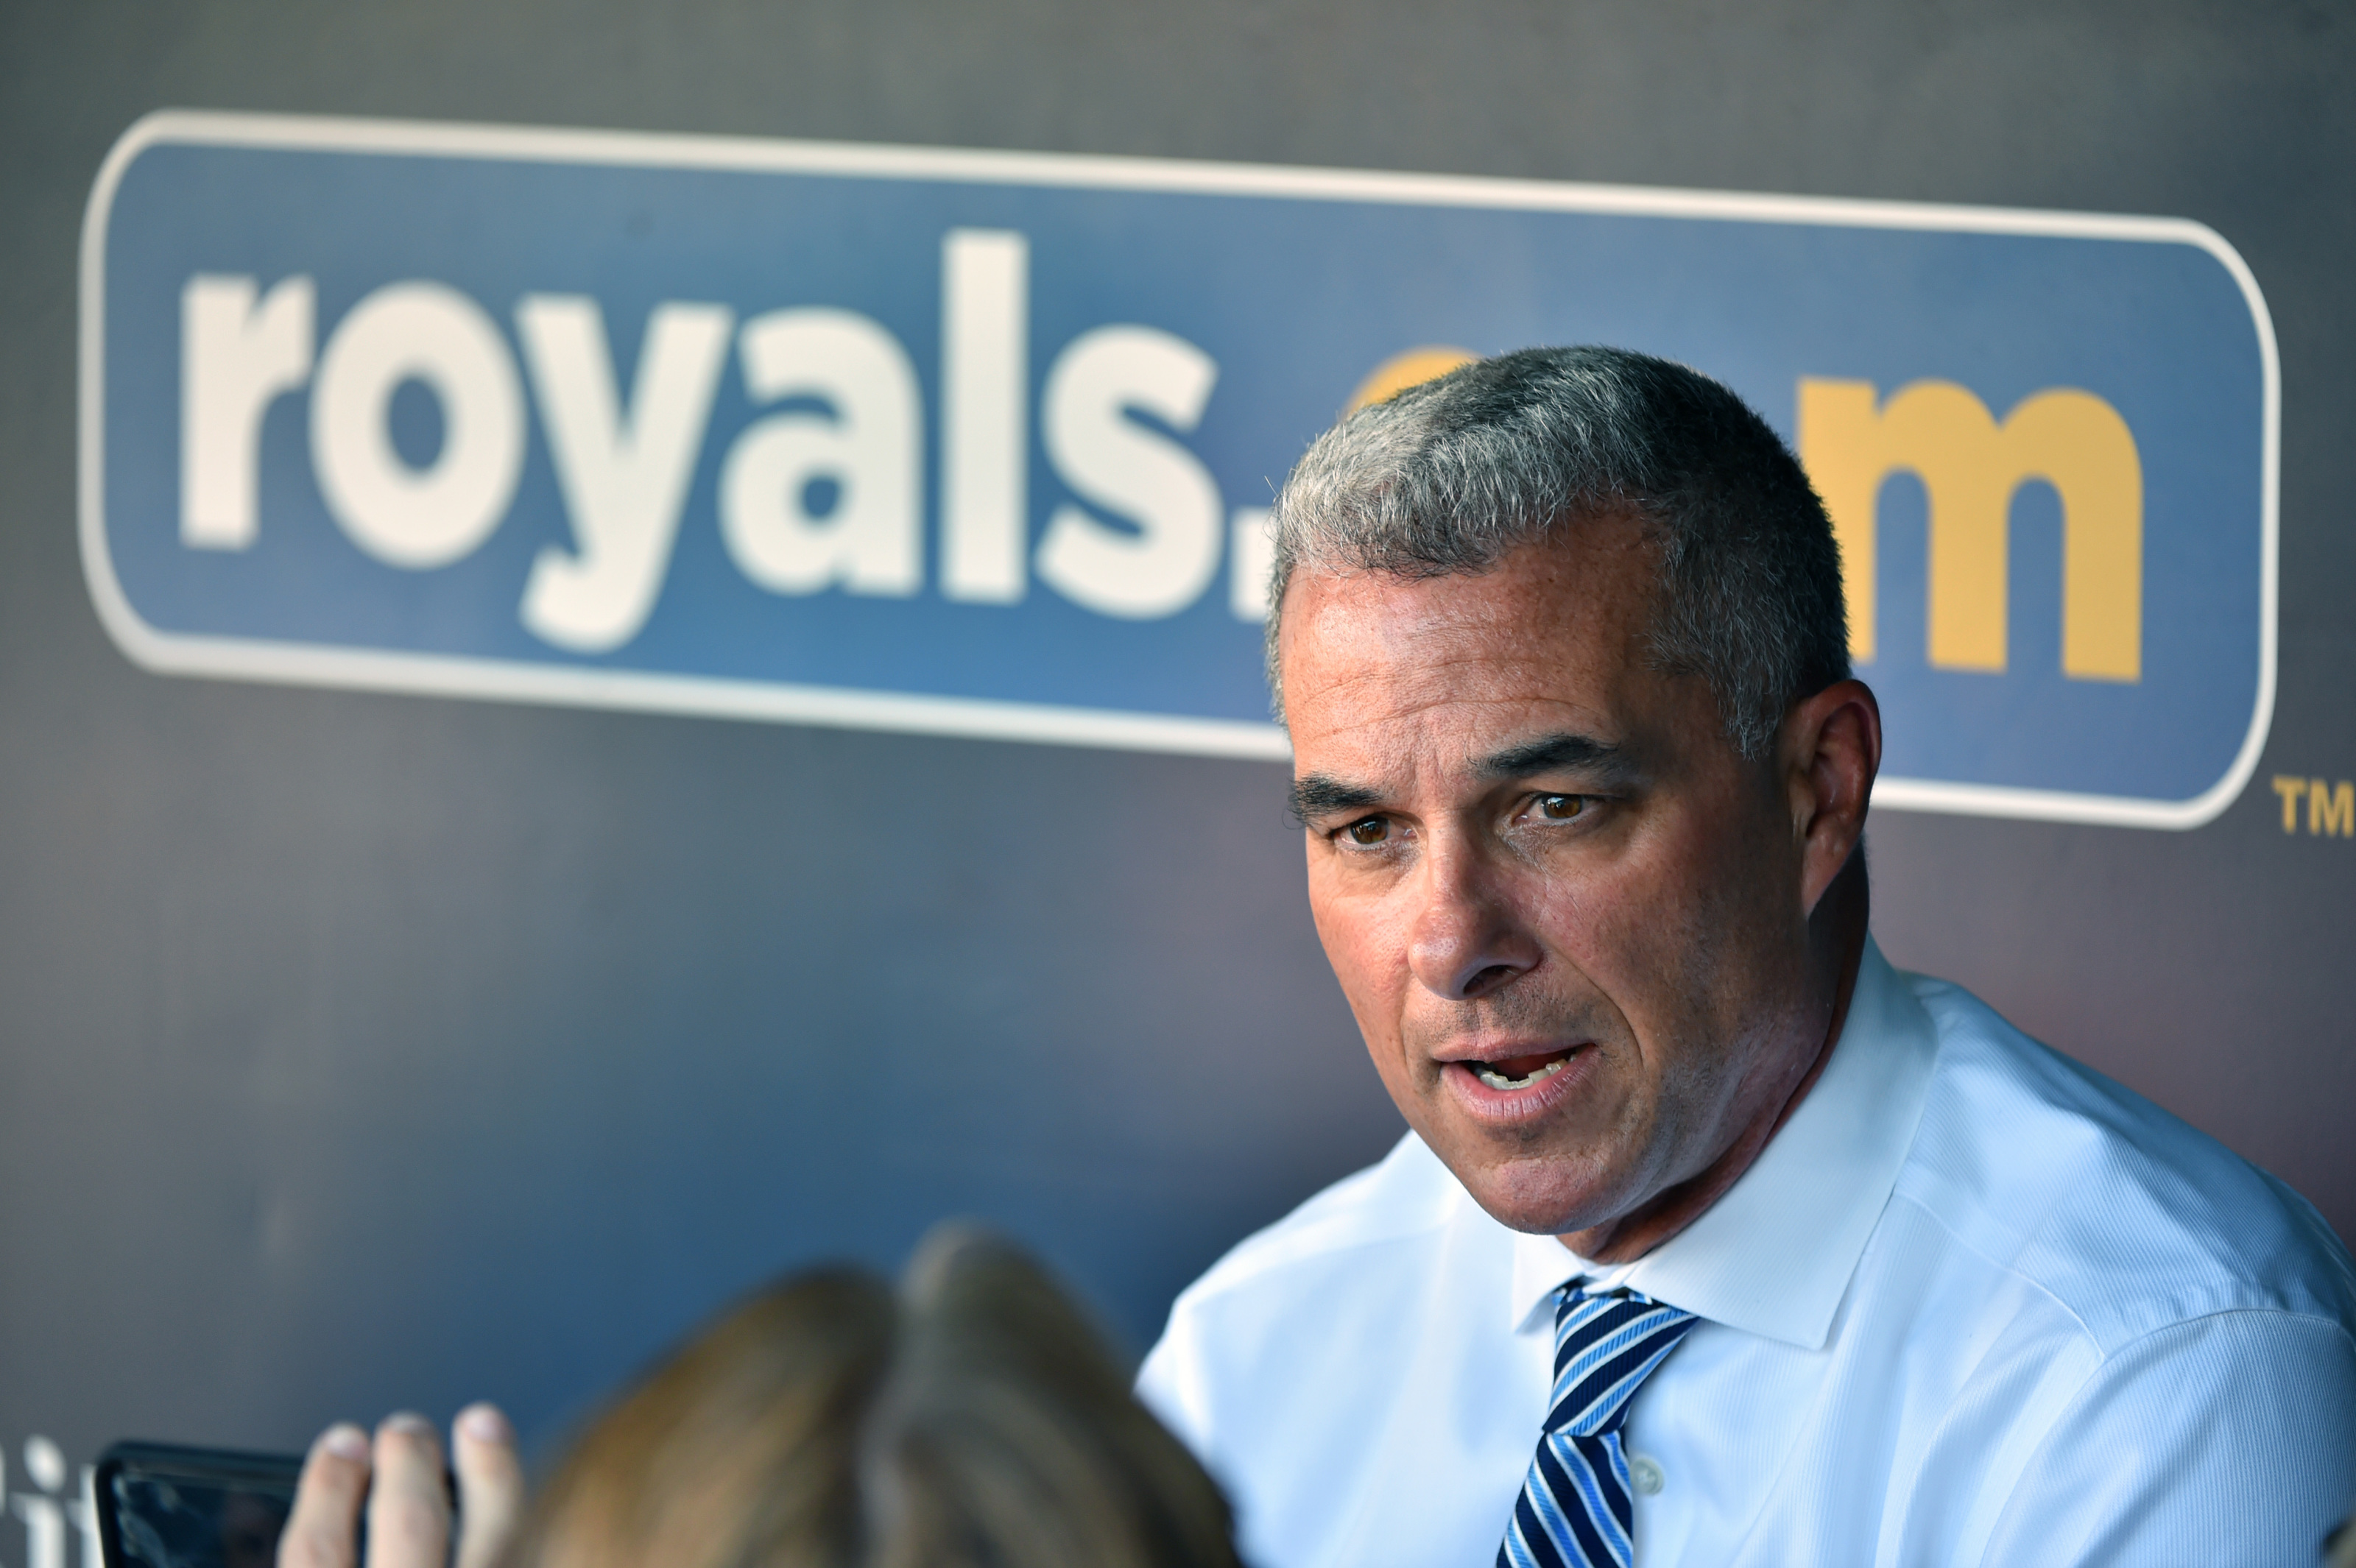 KC Royals: How to stock a 29-man expanded roster